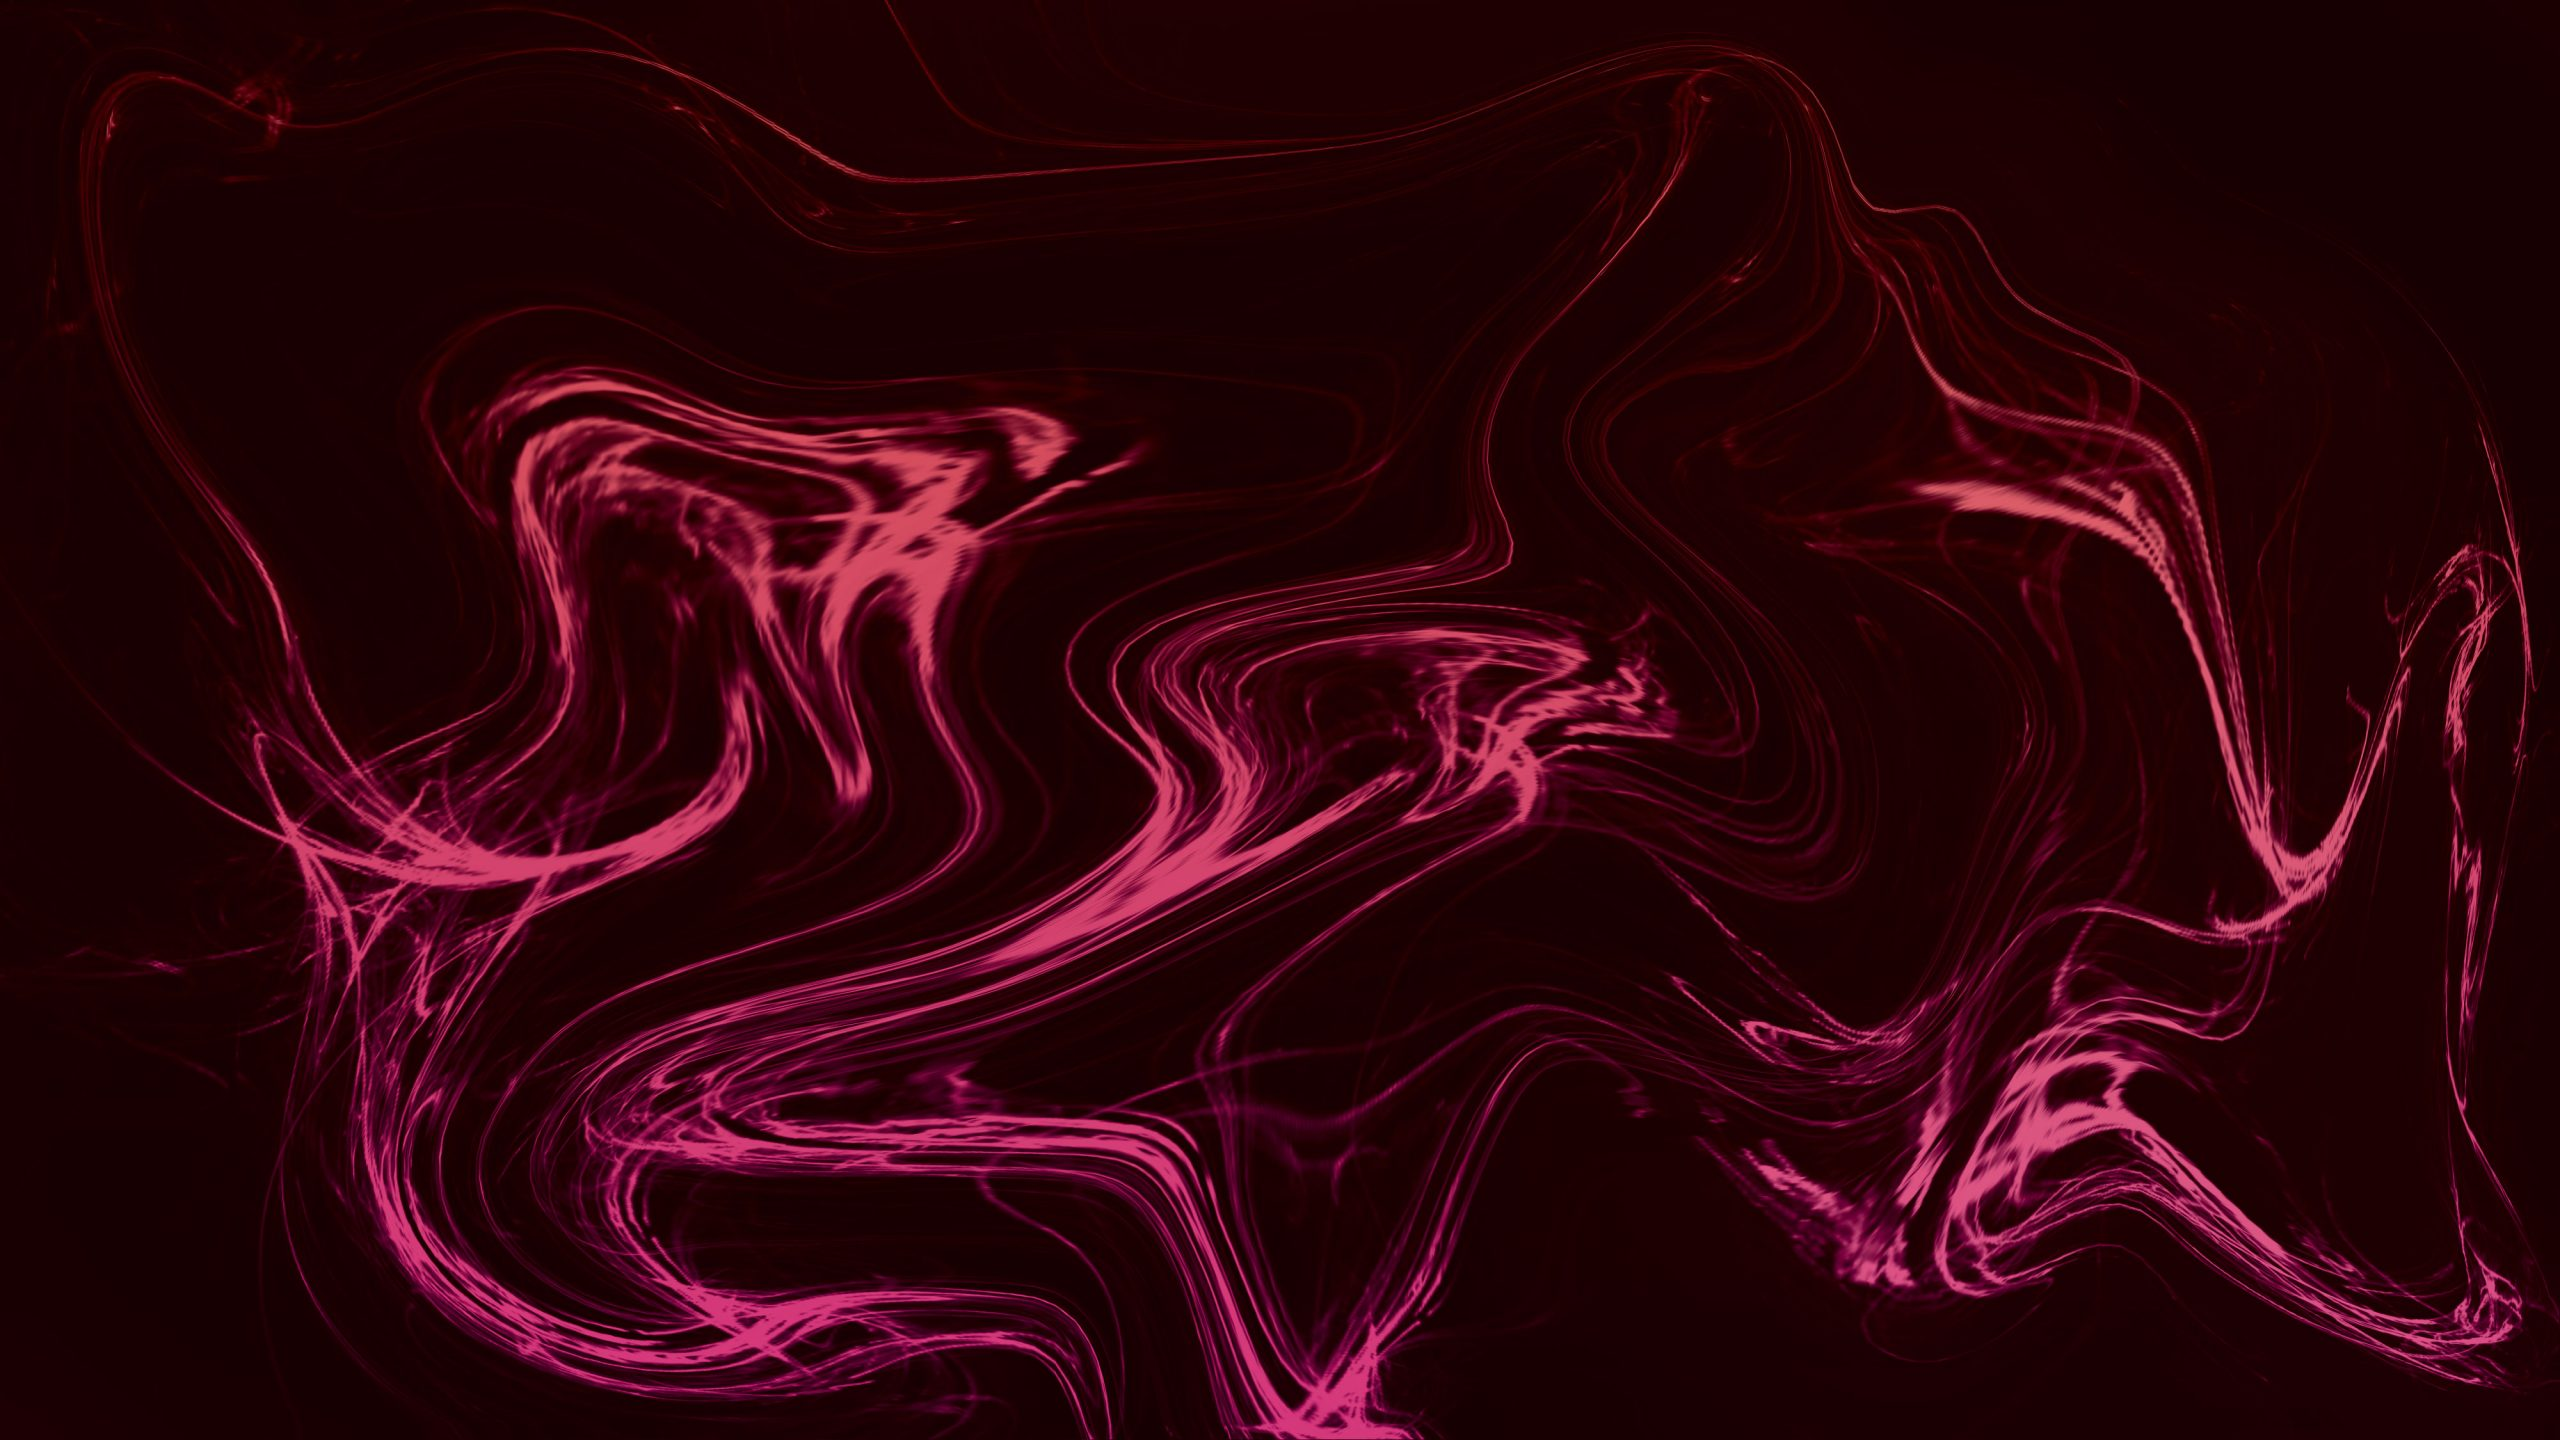 Smoke abstract background wallpaper